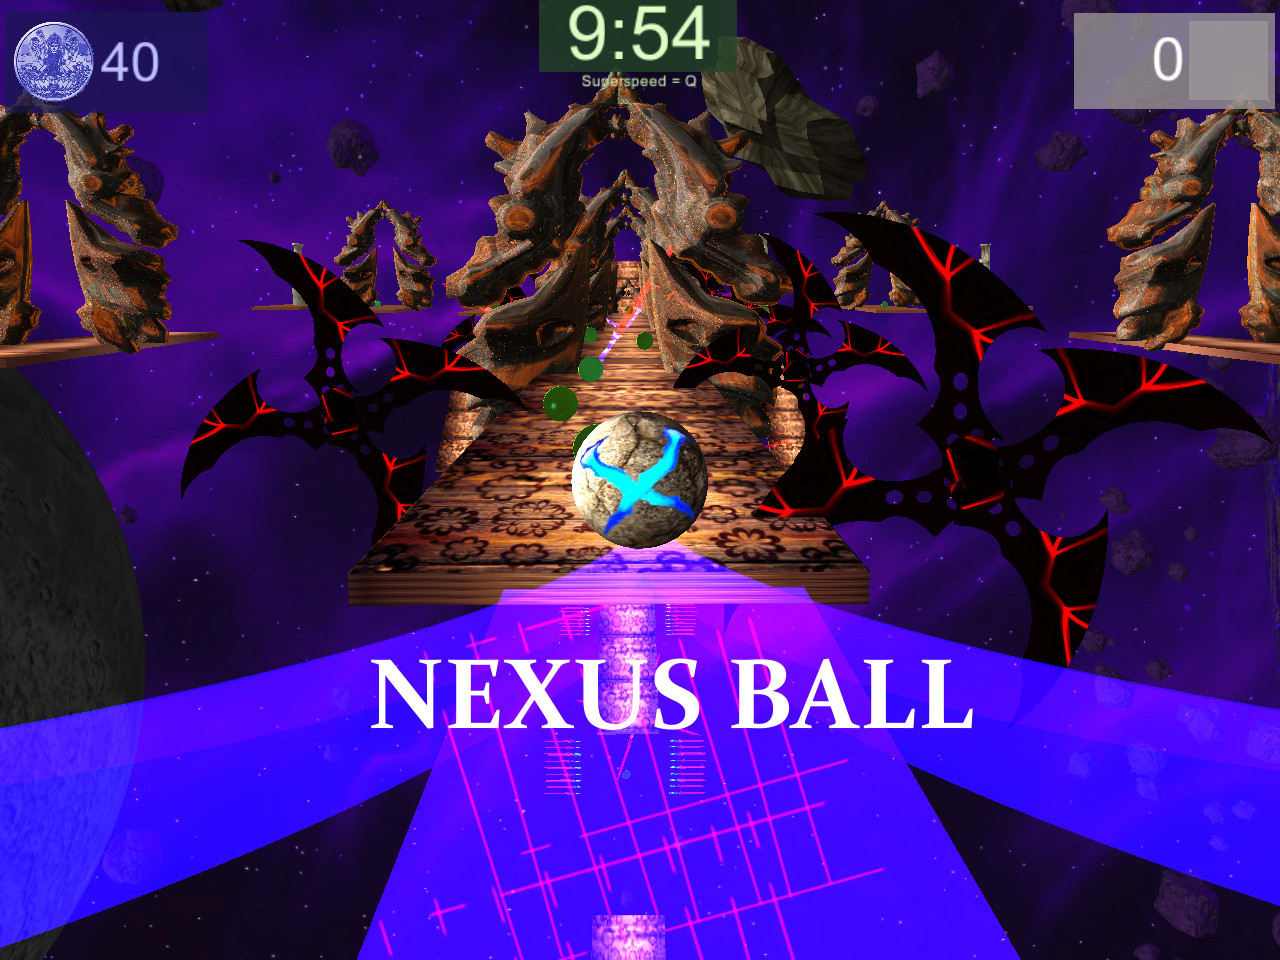 Nexus Ball